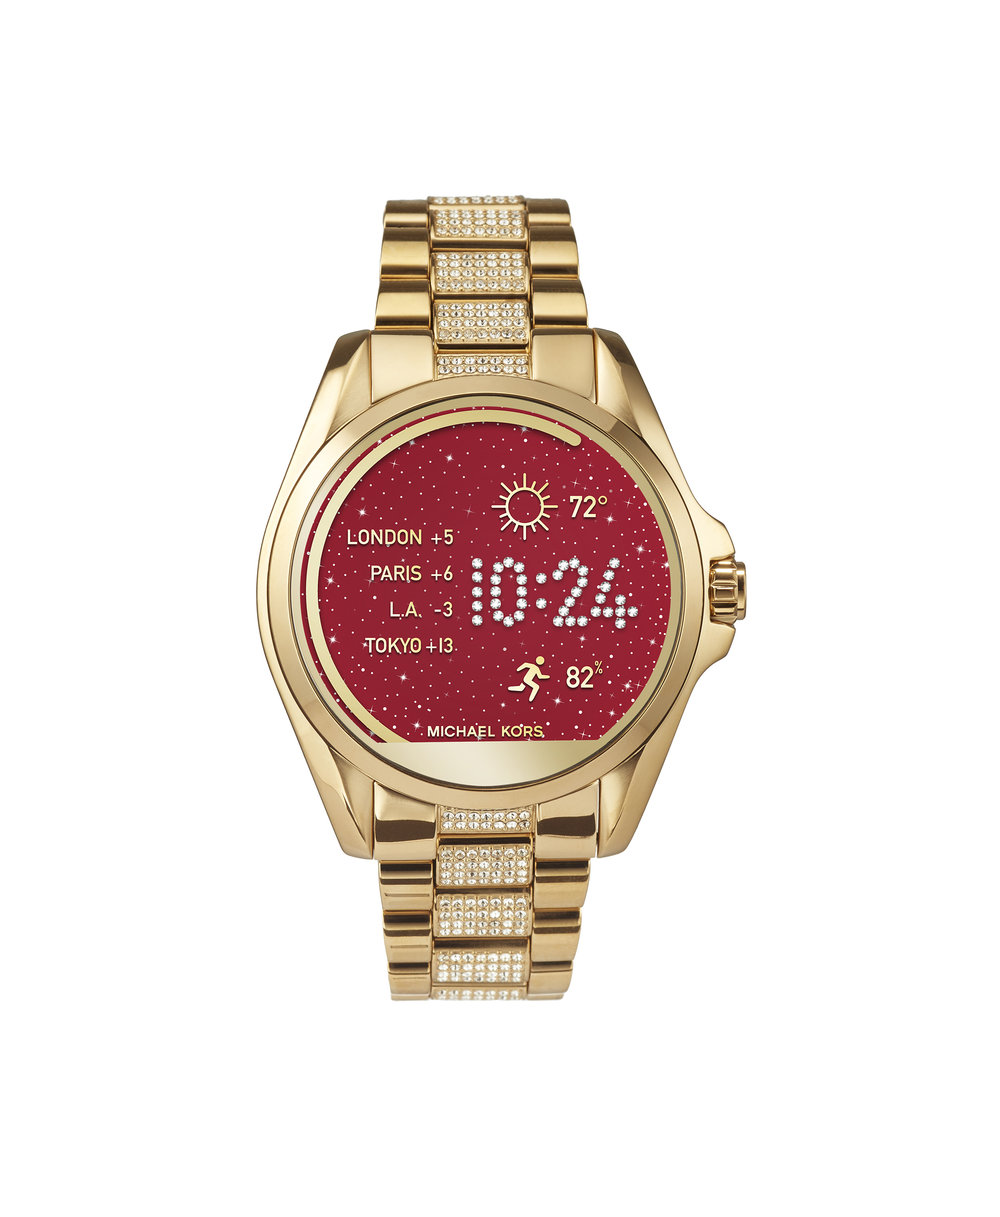 Michael Kors smwartwatch Women Holiday Gift Guide_1.jpg